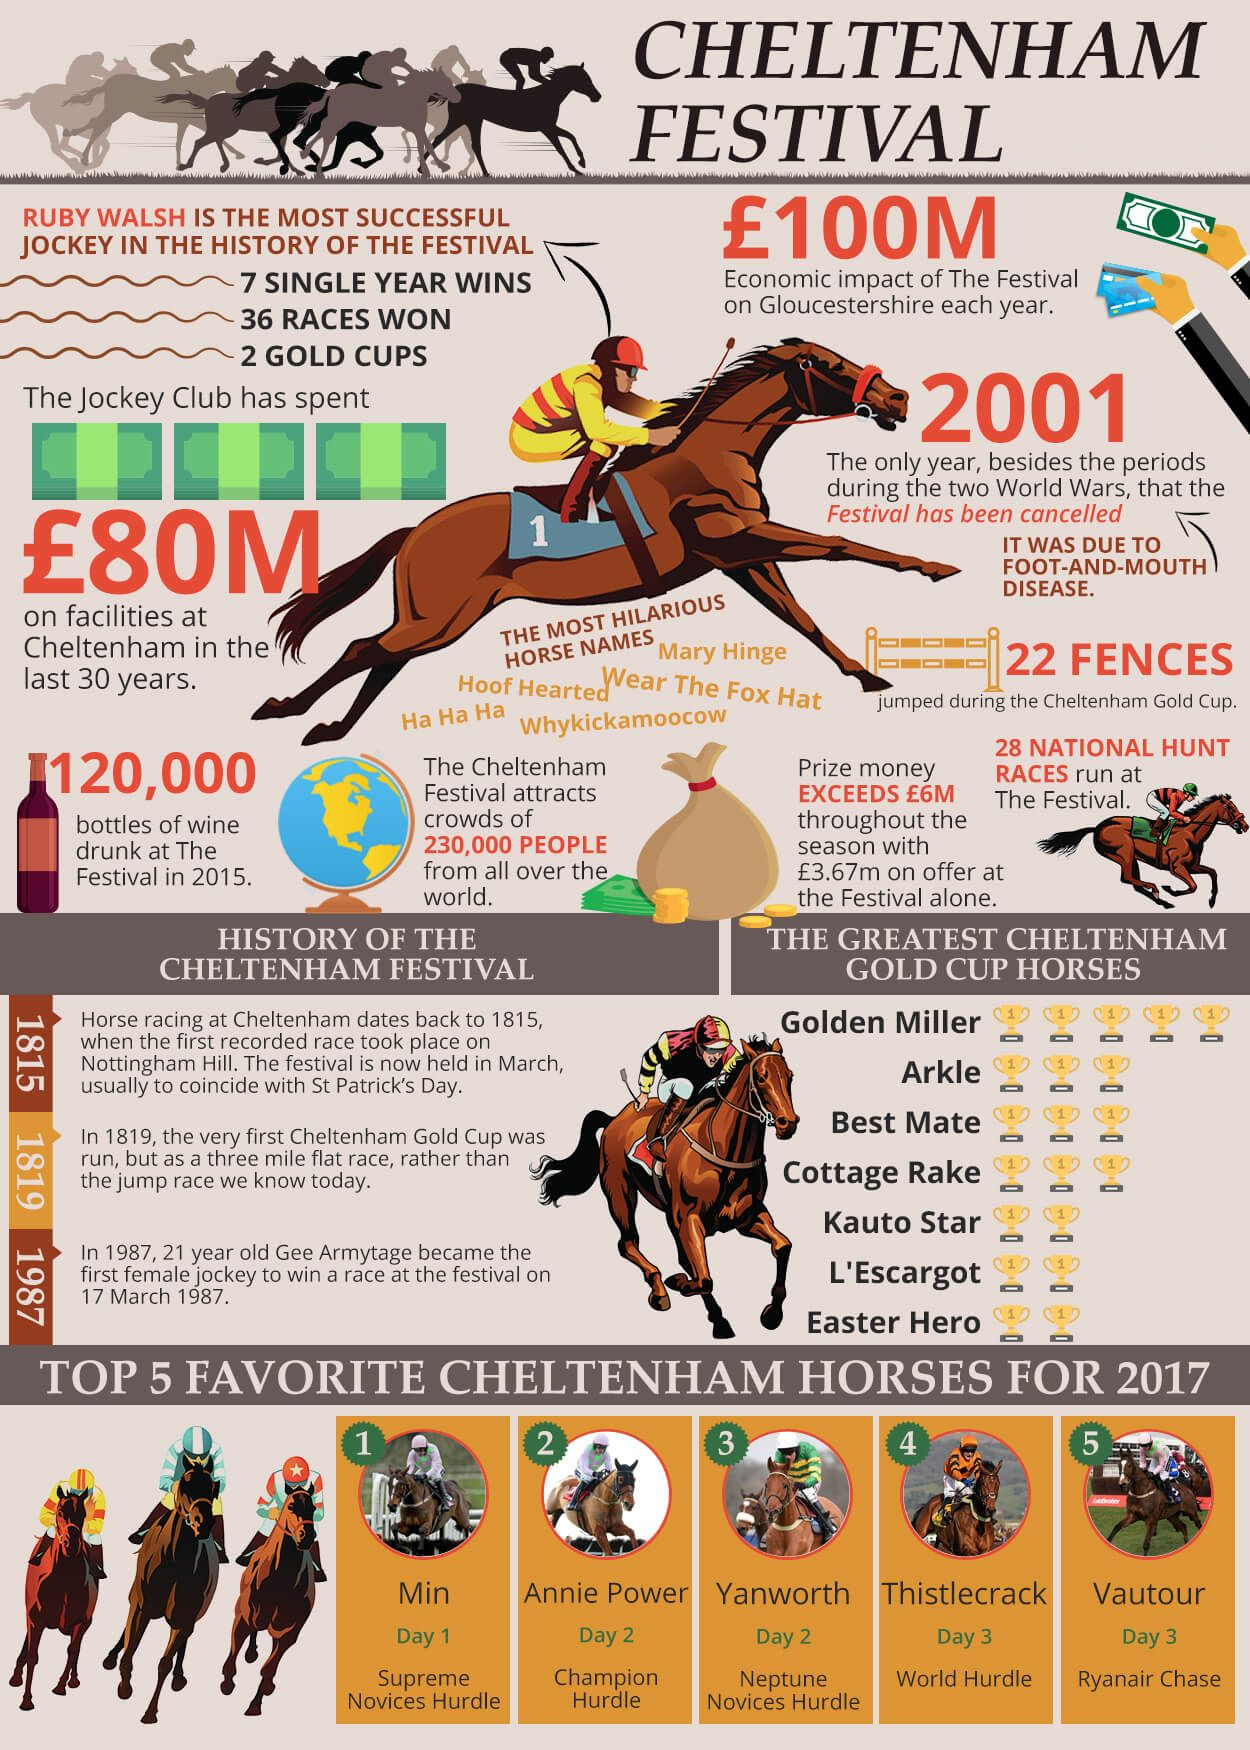 The Cheltenham Festival is a meeting in the National Hunt